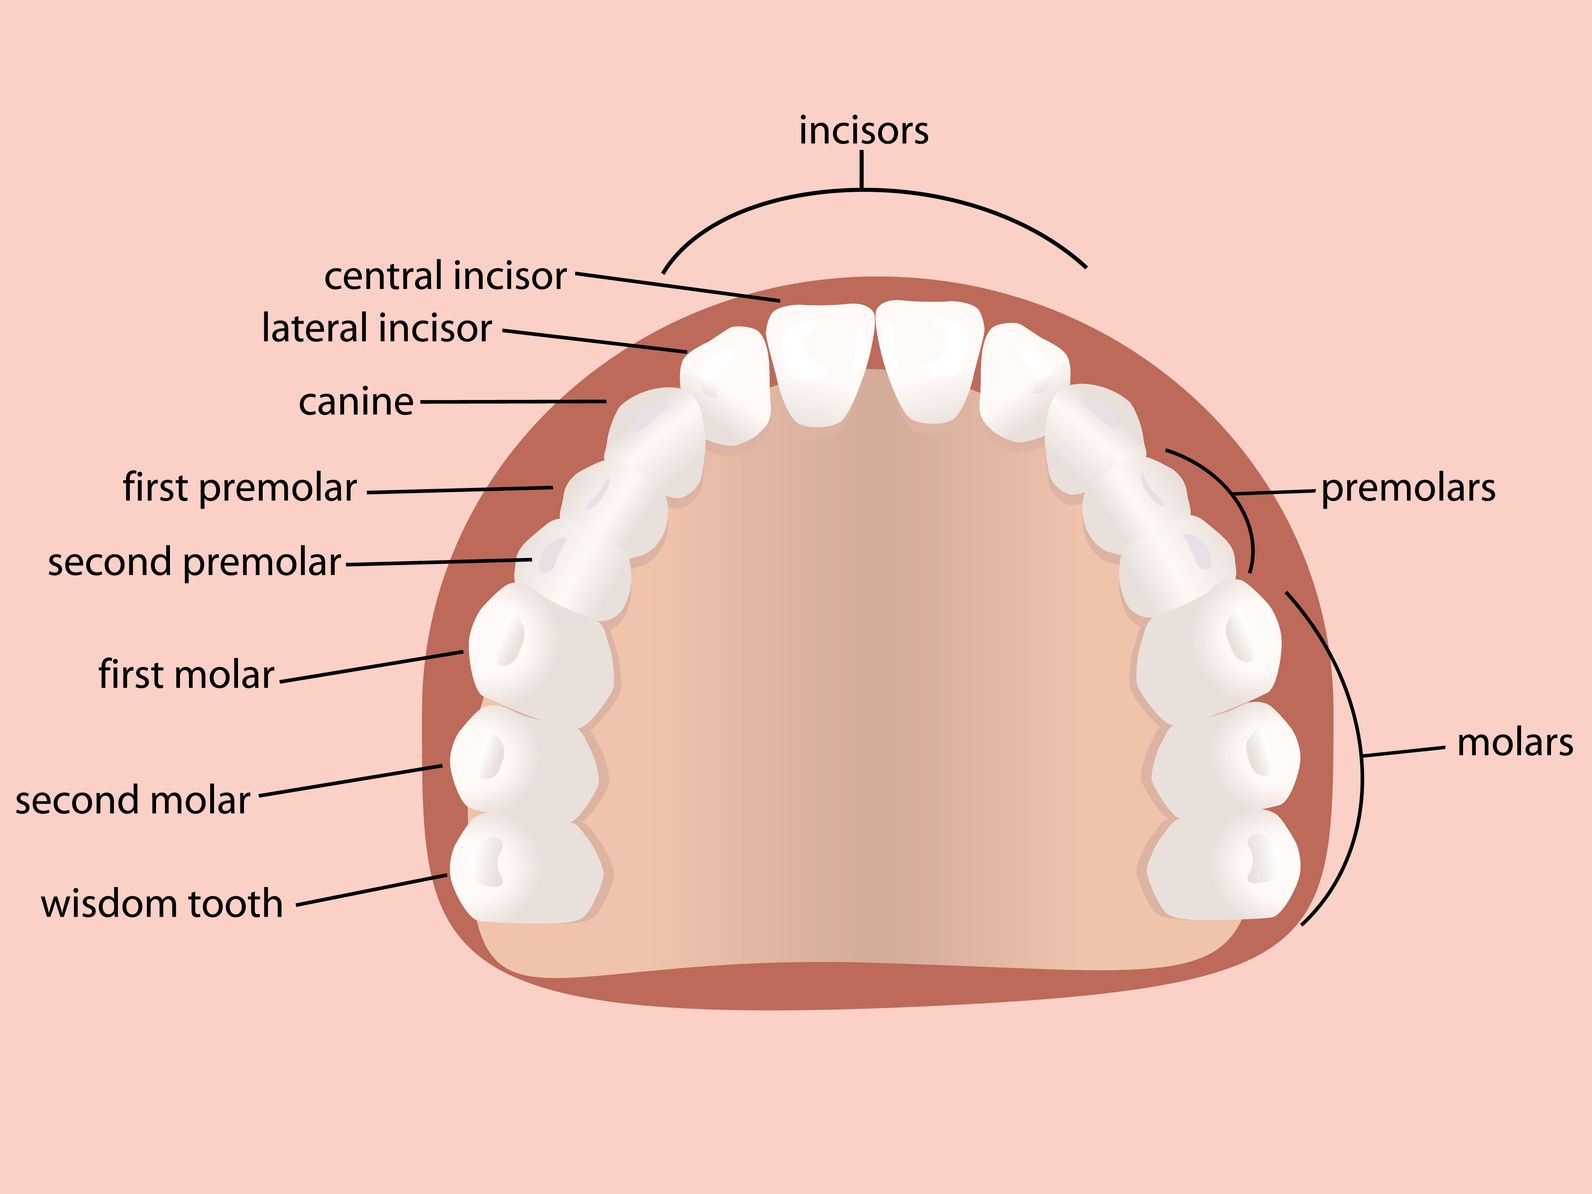 hight resolution of by the age of 18 the average adult has 32 teeth 16 teeth on top and 16 teeth on bottom each tooth in the mouth has a specific name and function